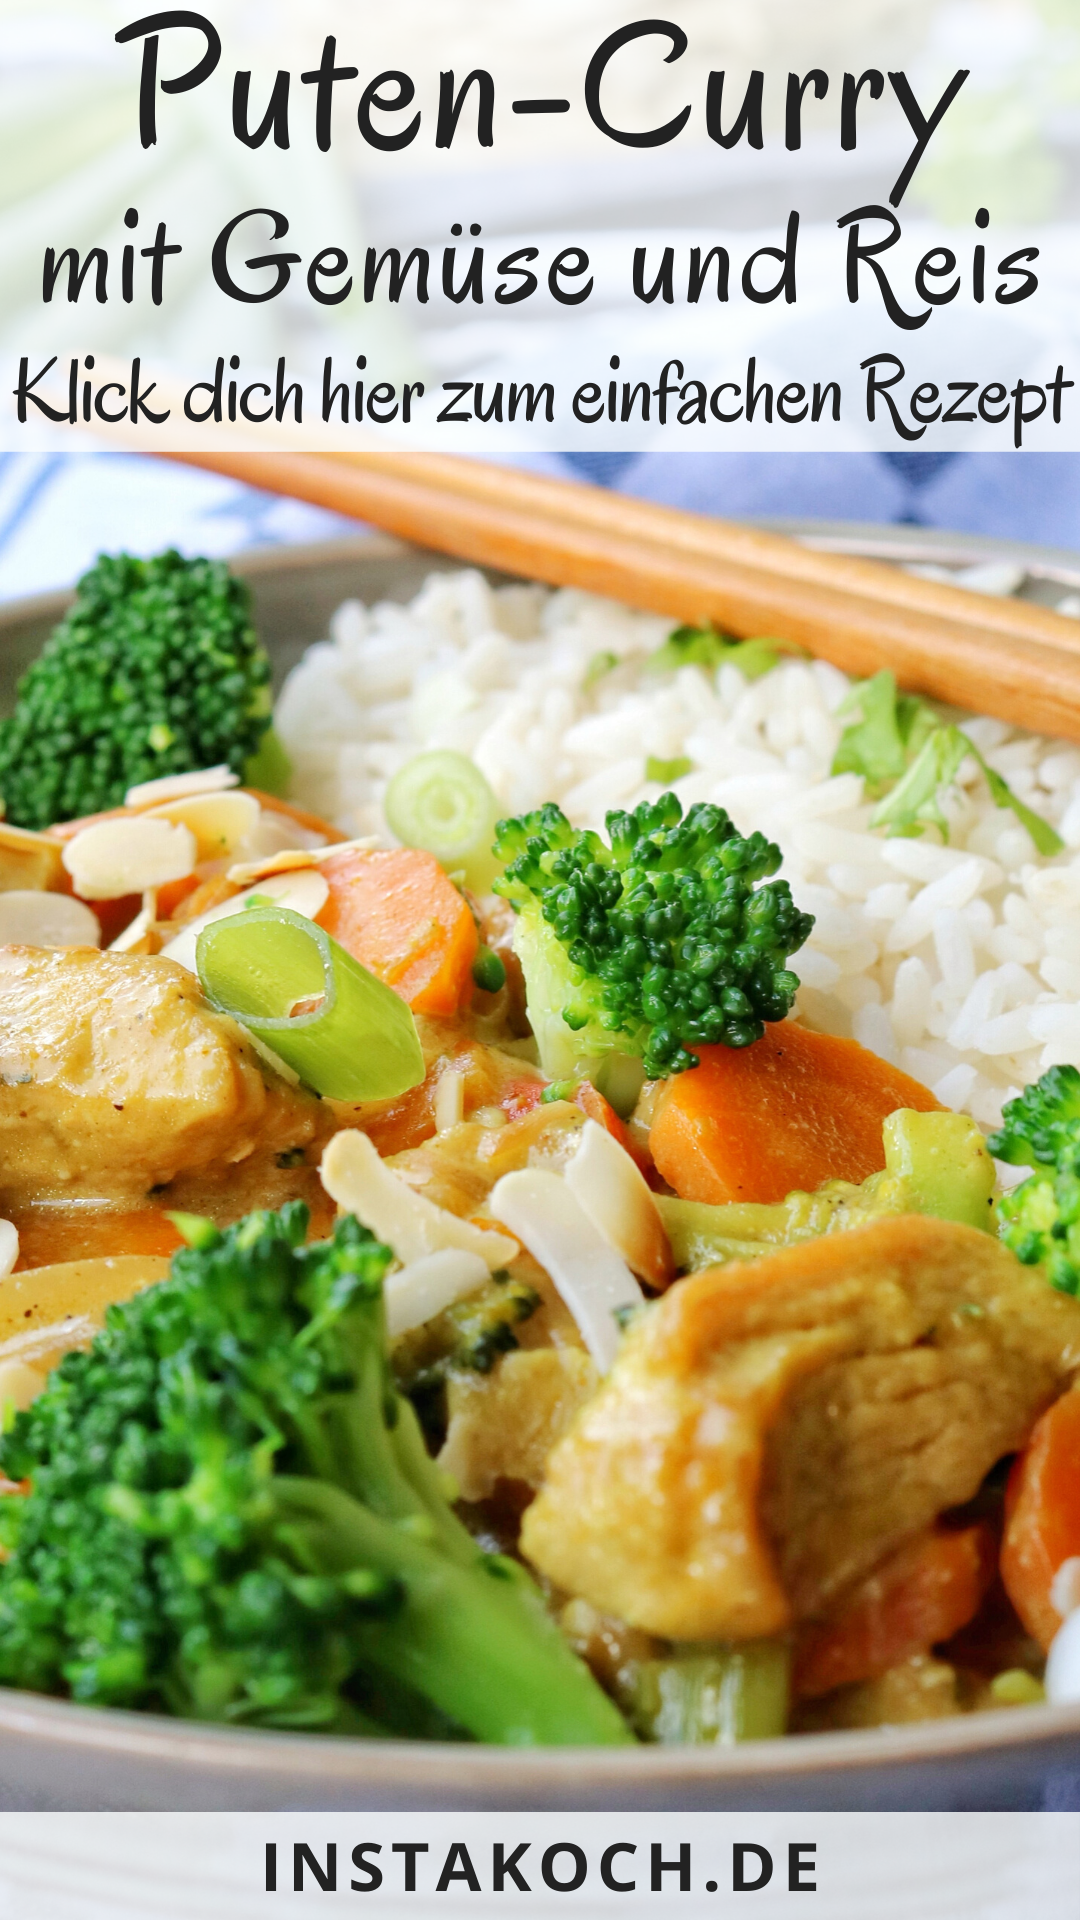 Photo of Turkey curry with broccoli, almonds and rice – click here for the delicious recipe